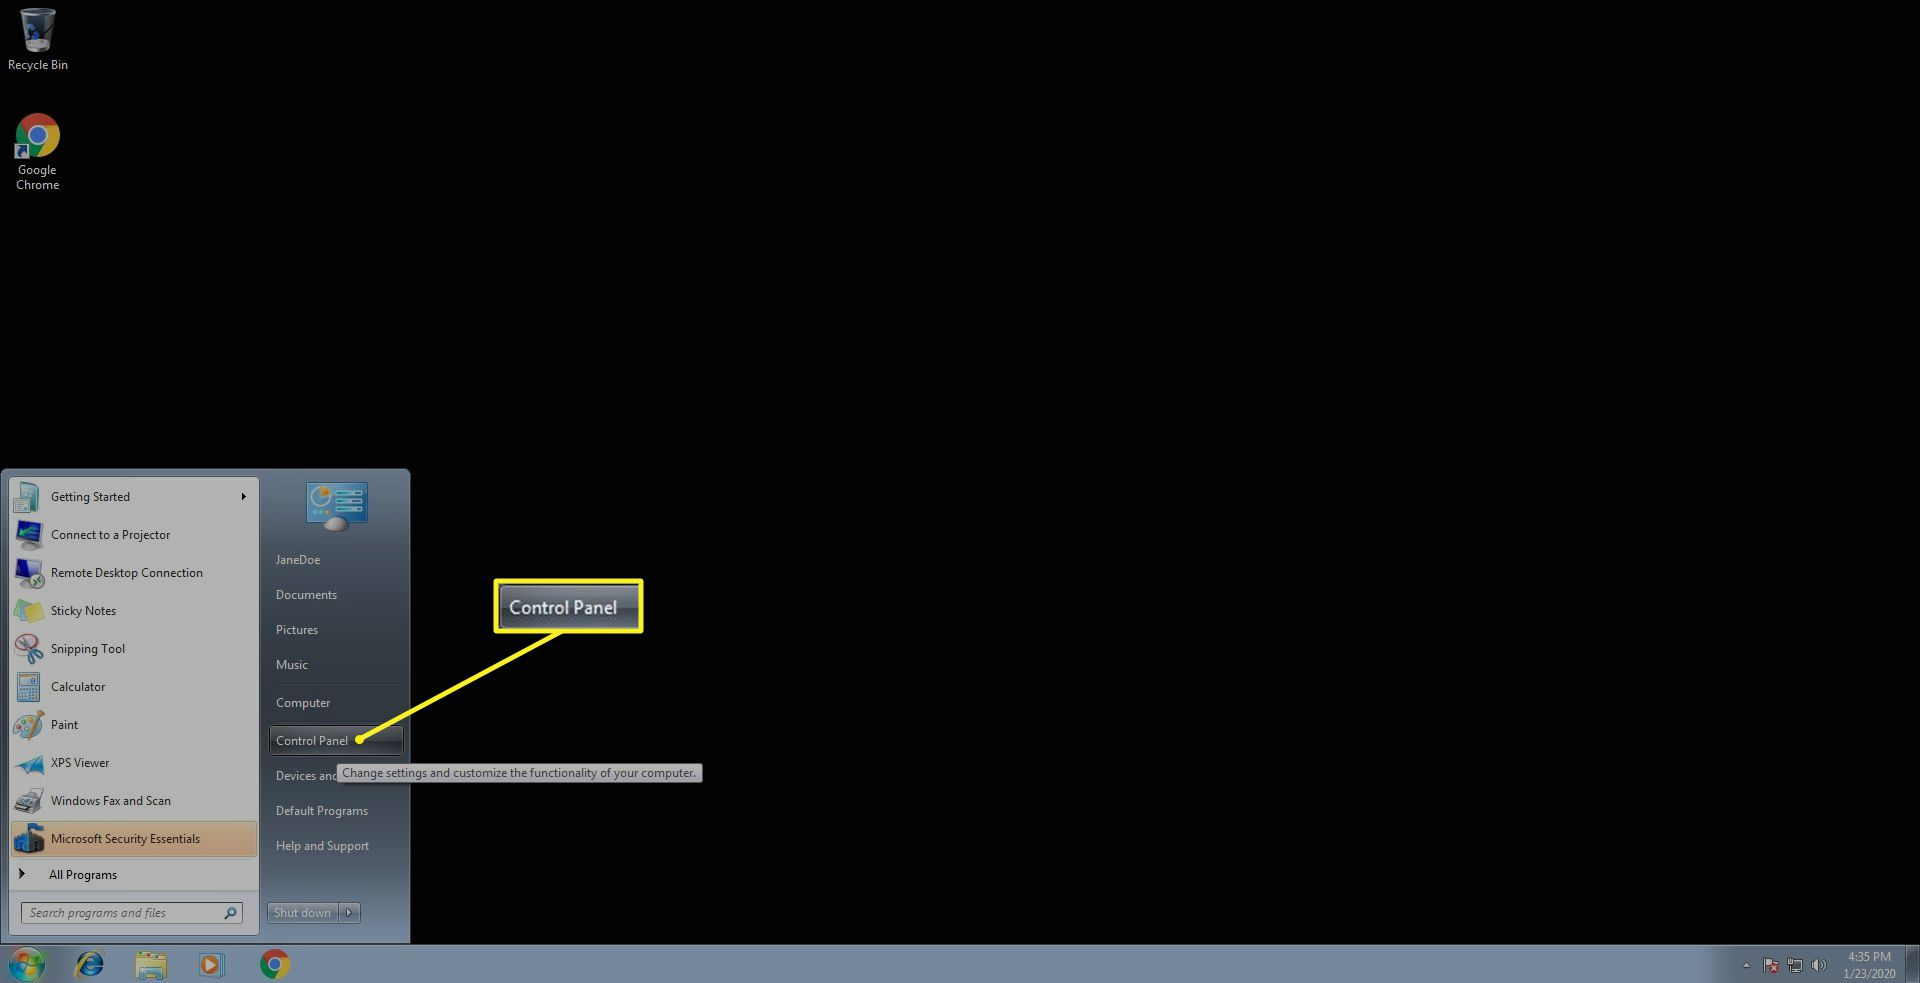 The Control Panel location in Windows 7